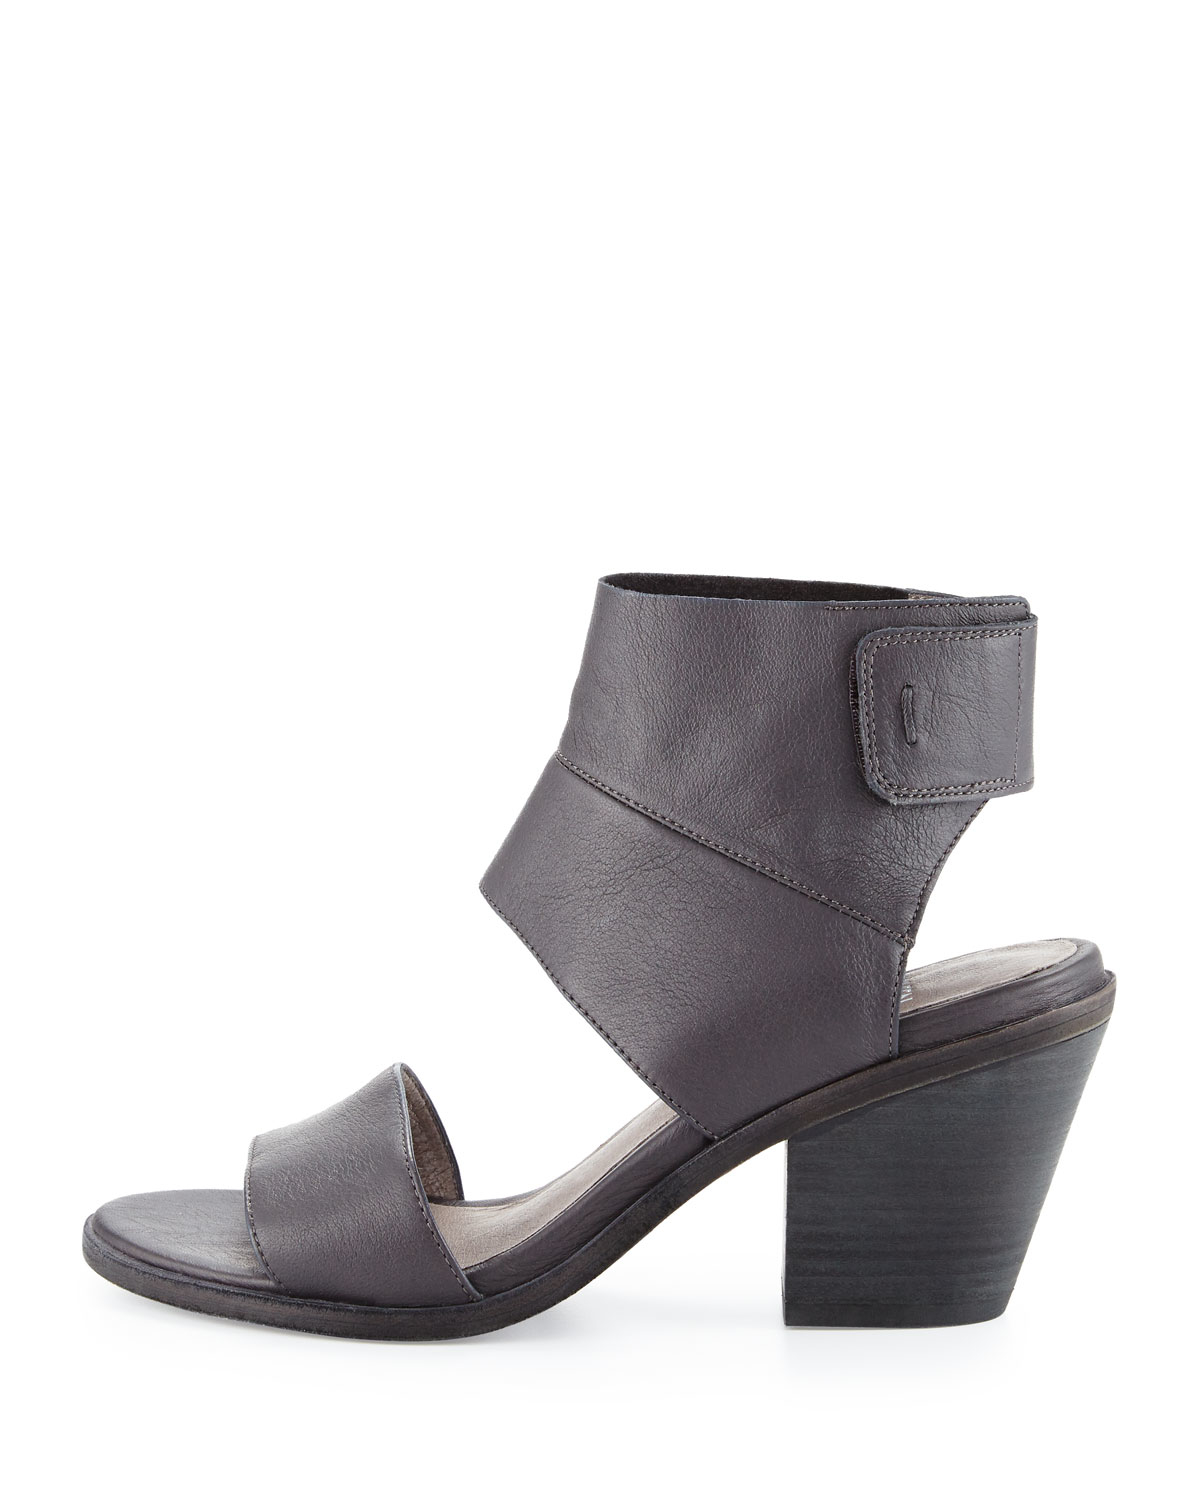 Eileen Fisher Shoes Canada